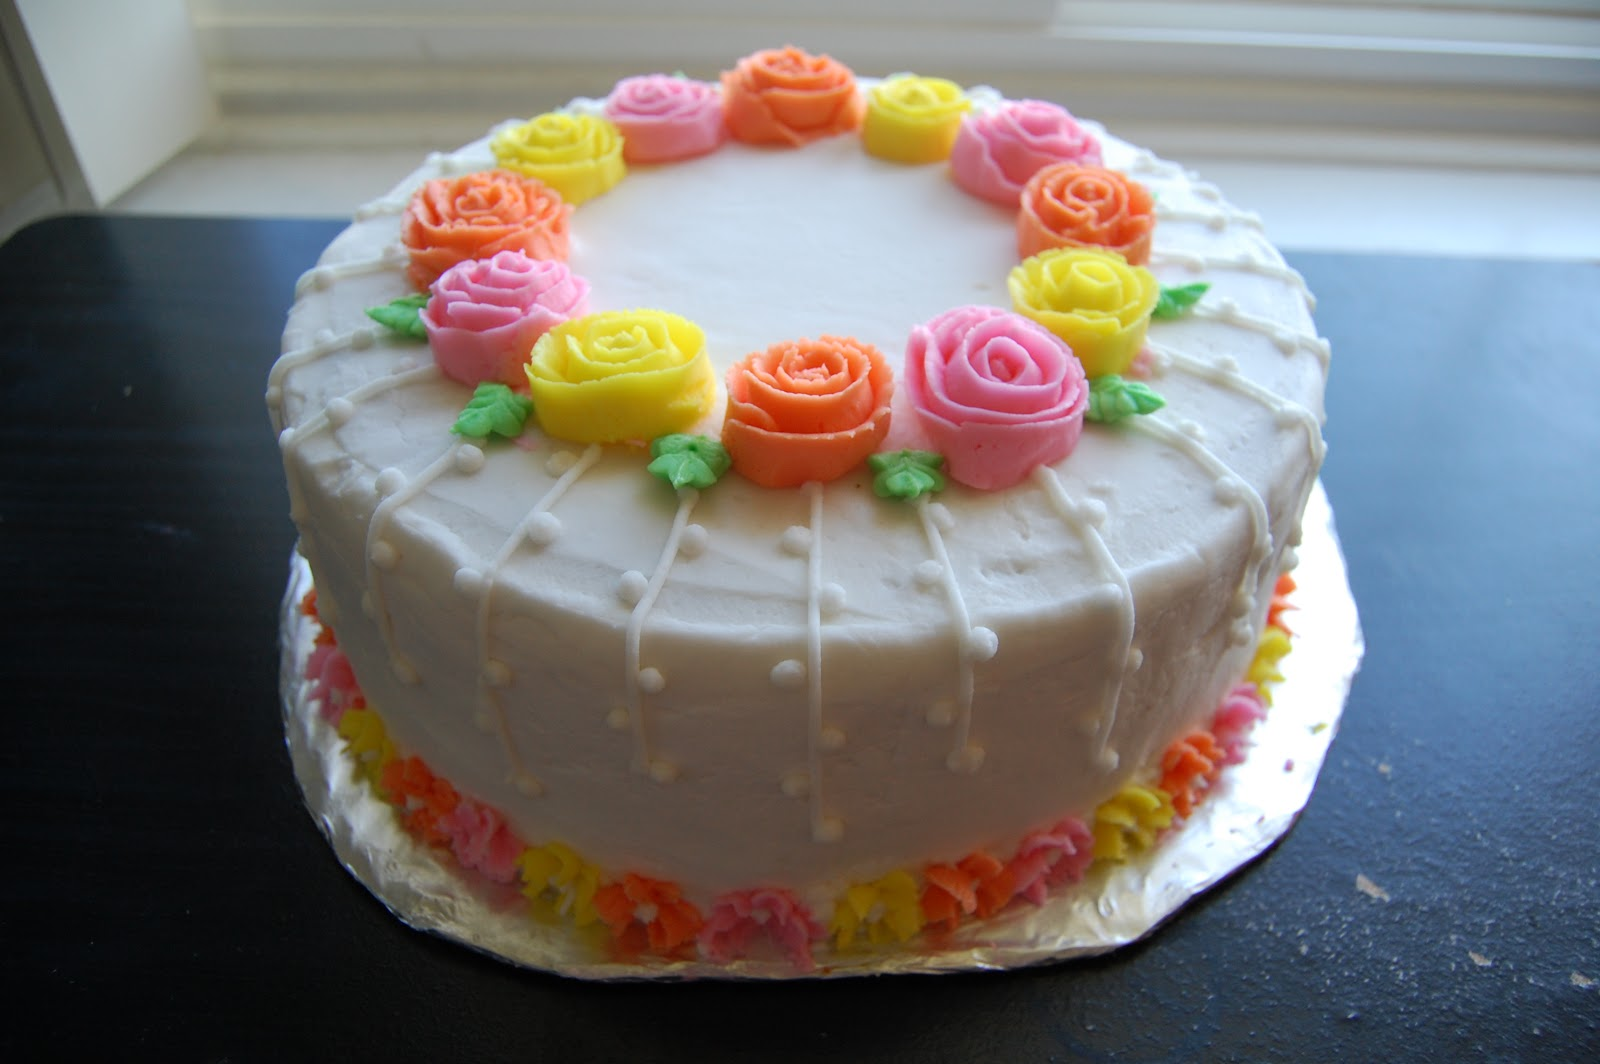 Wilton Buttercream Cake Decorating Ideas : ilovecakes: Wilton cake decorating course cakes